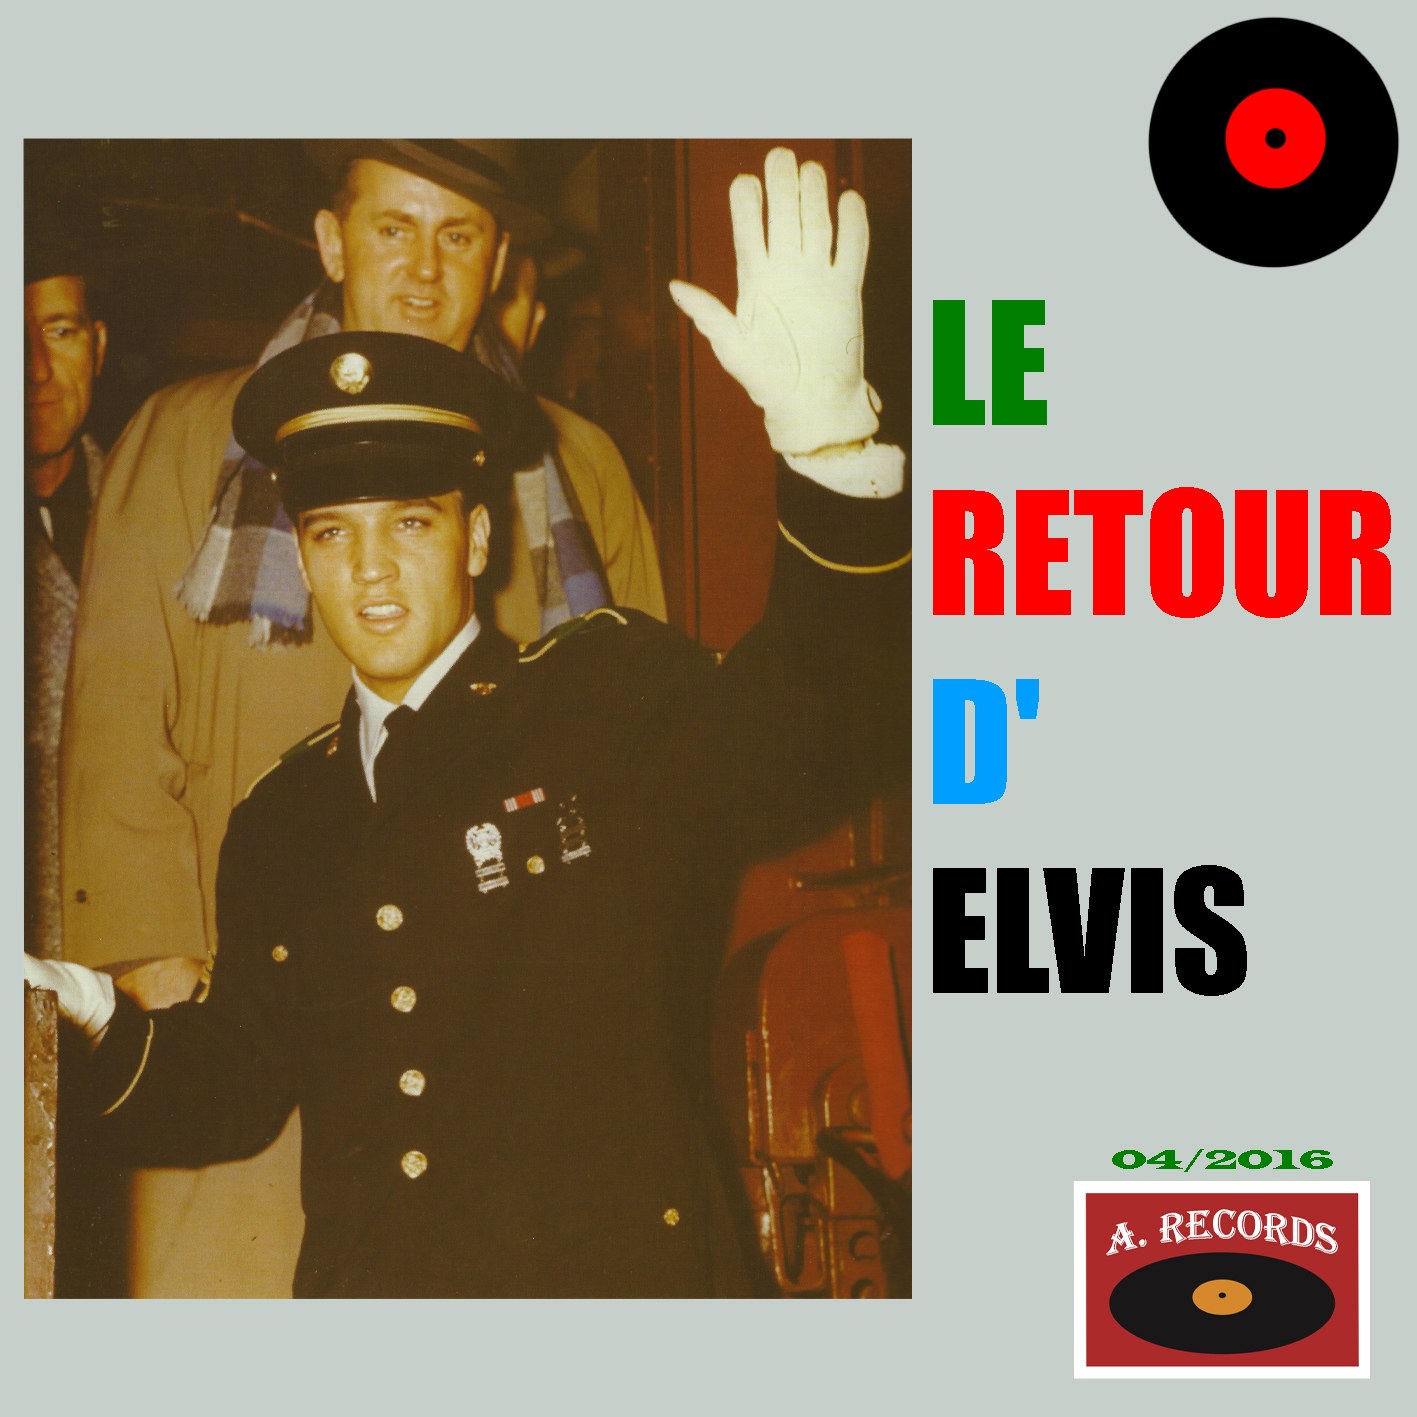 Le Retour D' Elvis (April 2016)